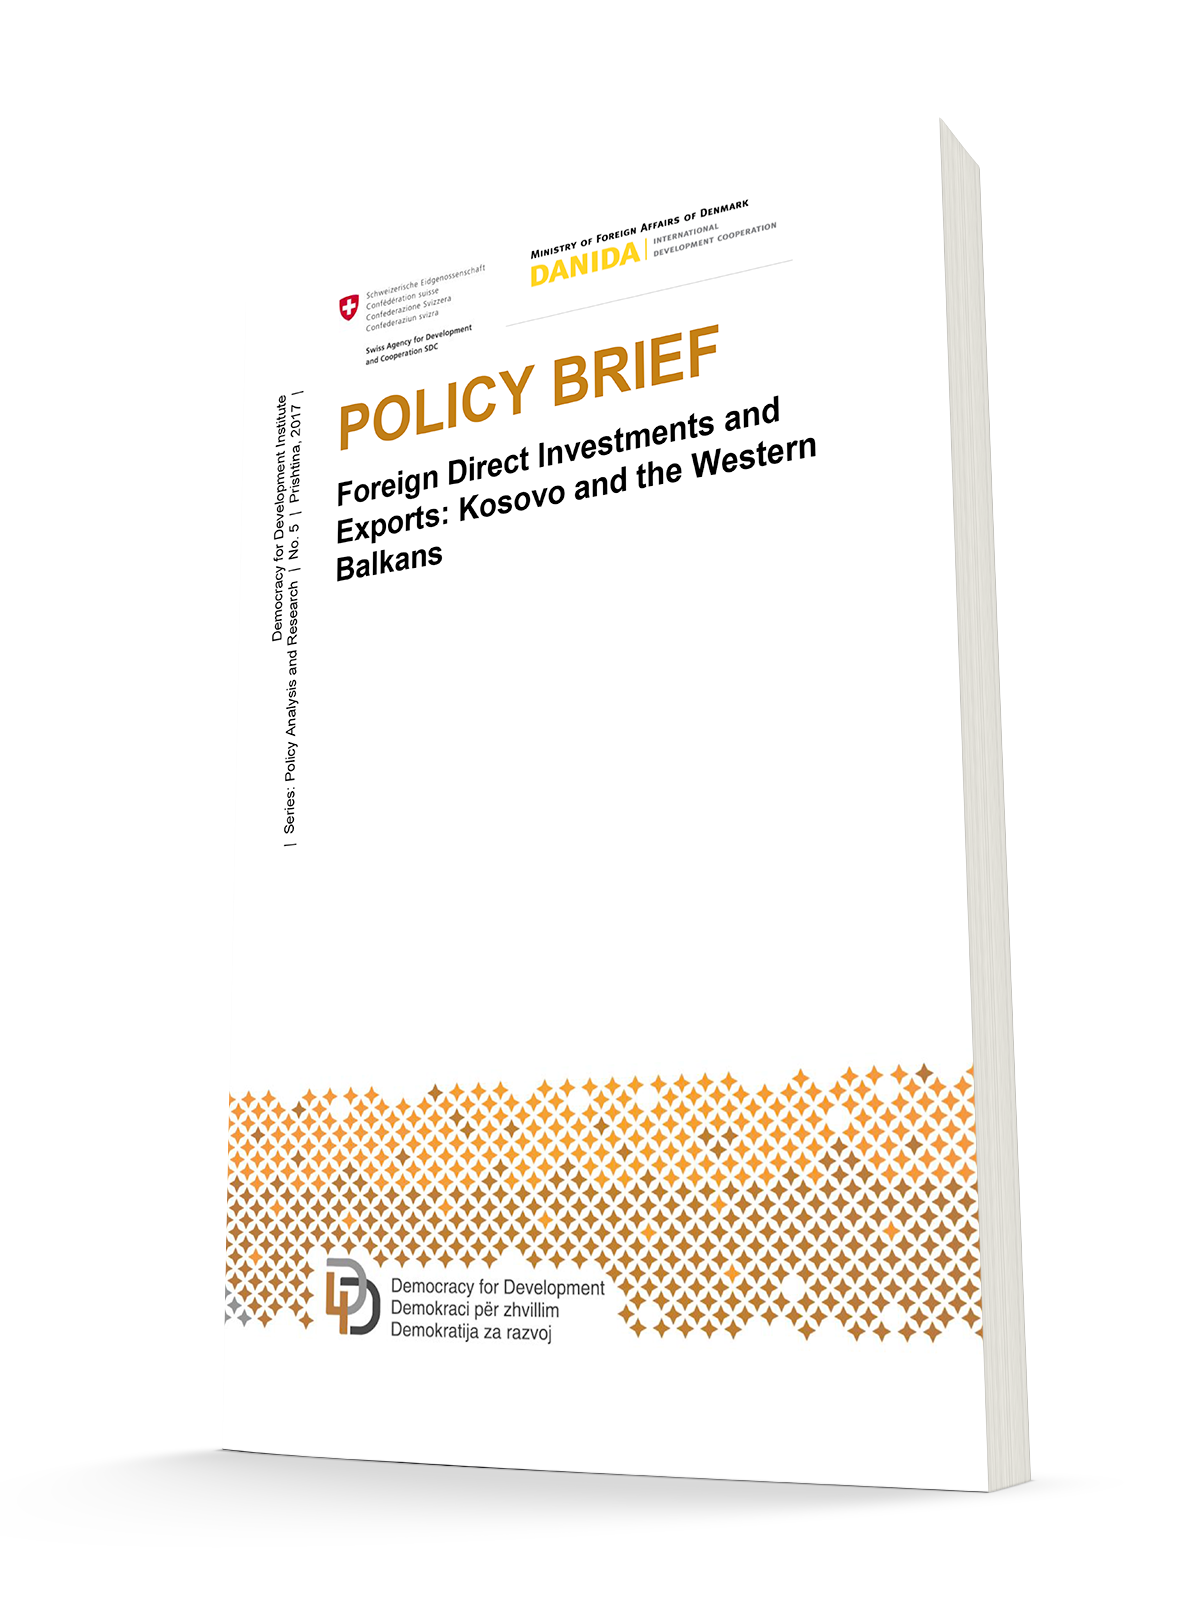 POLICY BRIEF Foreign Direct Investments and Exports: Kosovo and the